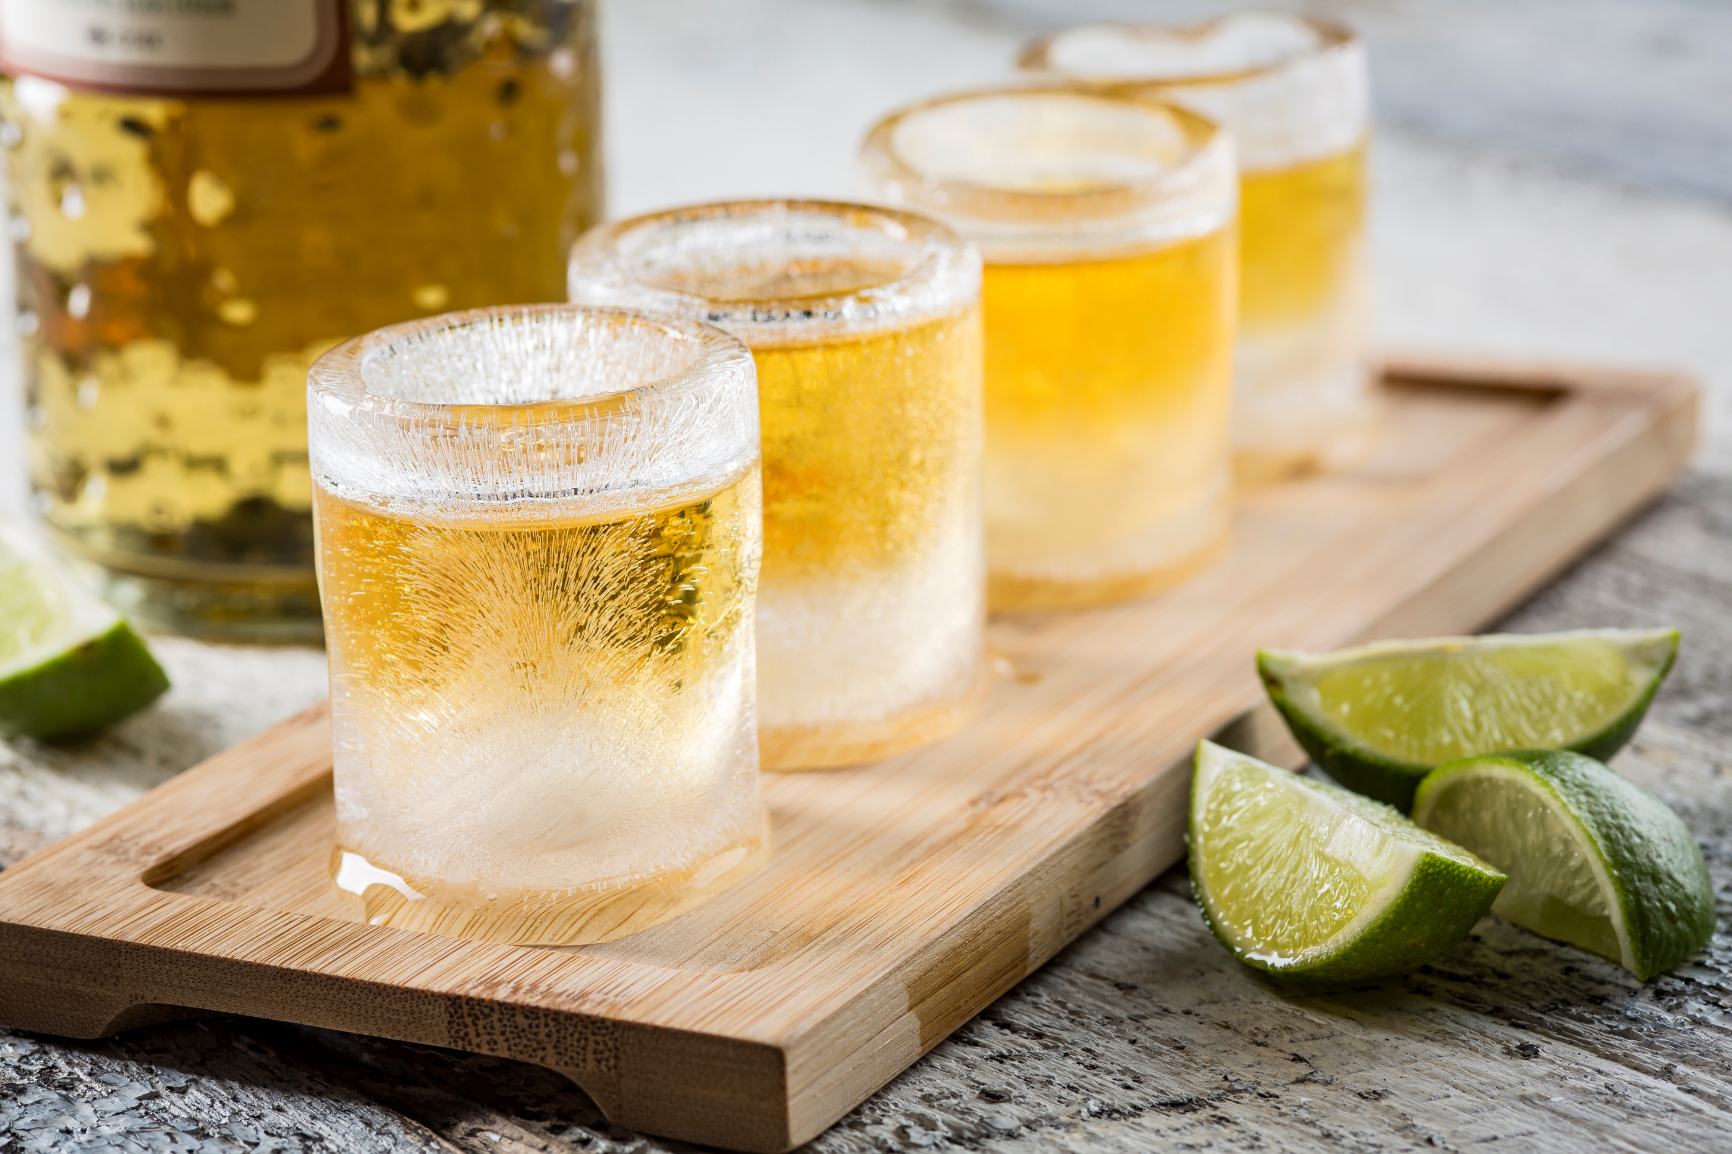 Raising the Bar! 4 Ways To Elevate Your Bar Service